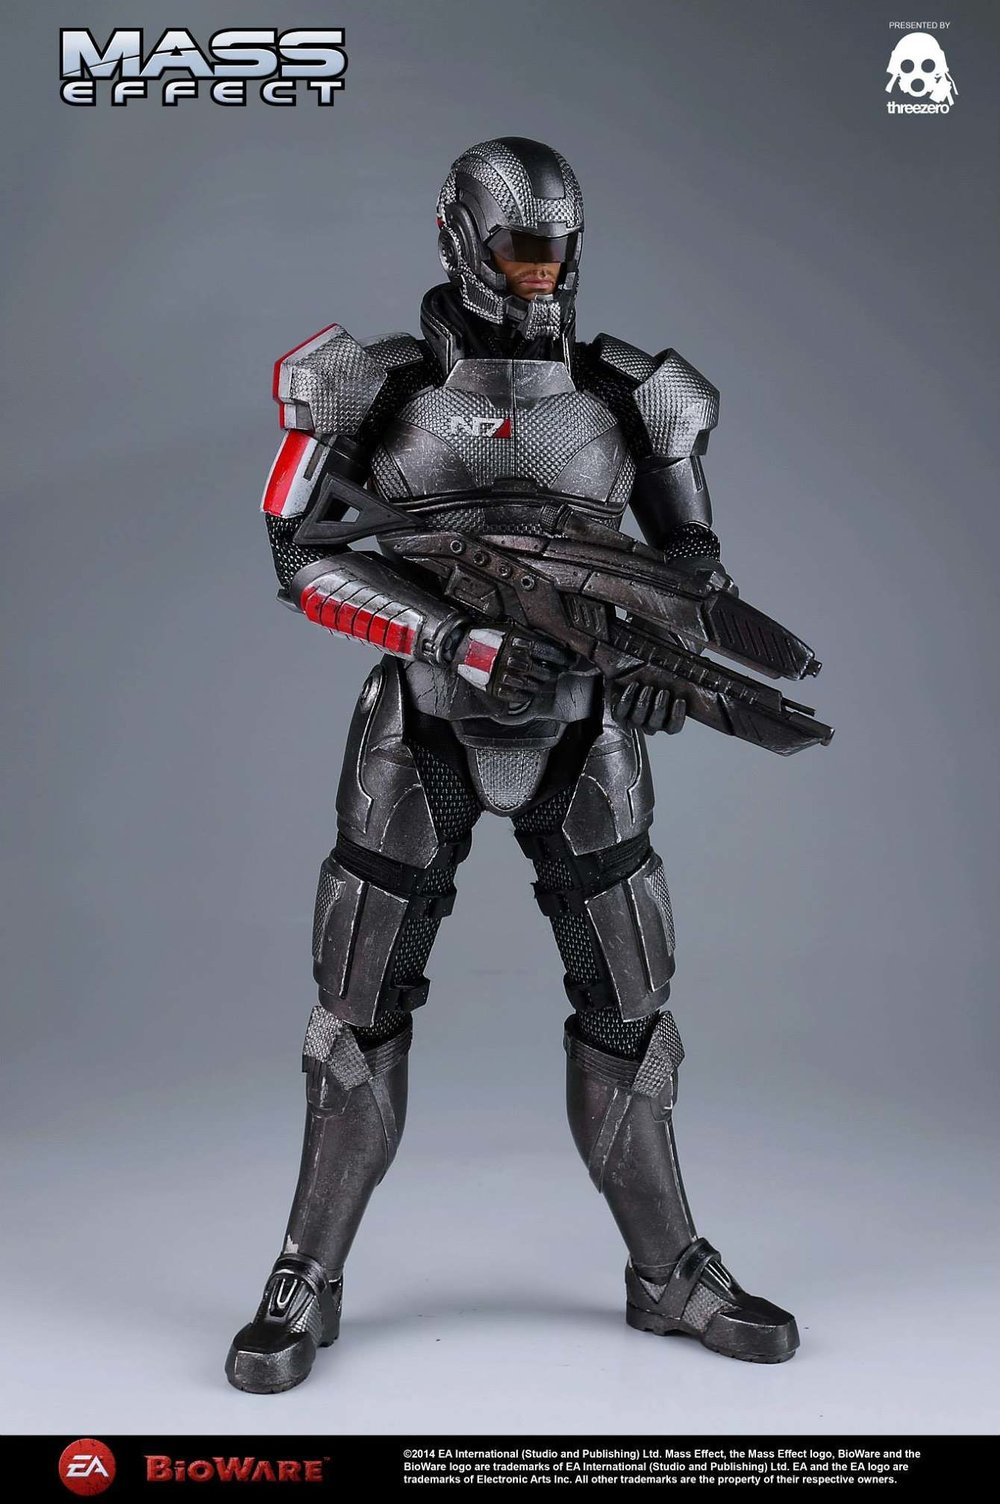 ThreeZero-Bioware-video-game-Shepard-10465520_997493210276507_4259927781135410788_o_1340_c.jpg